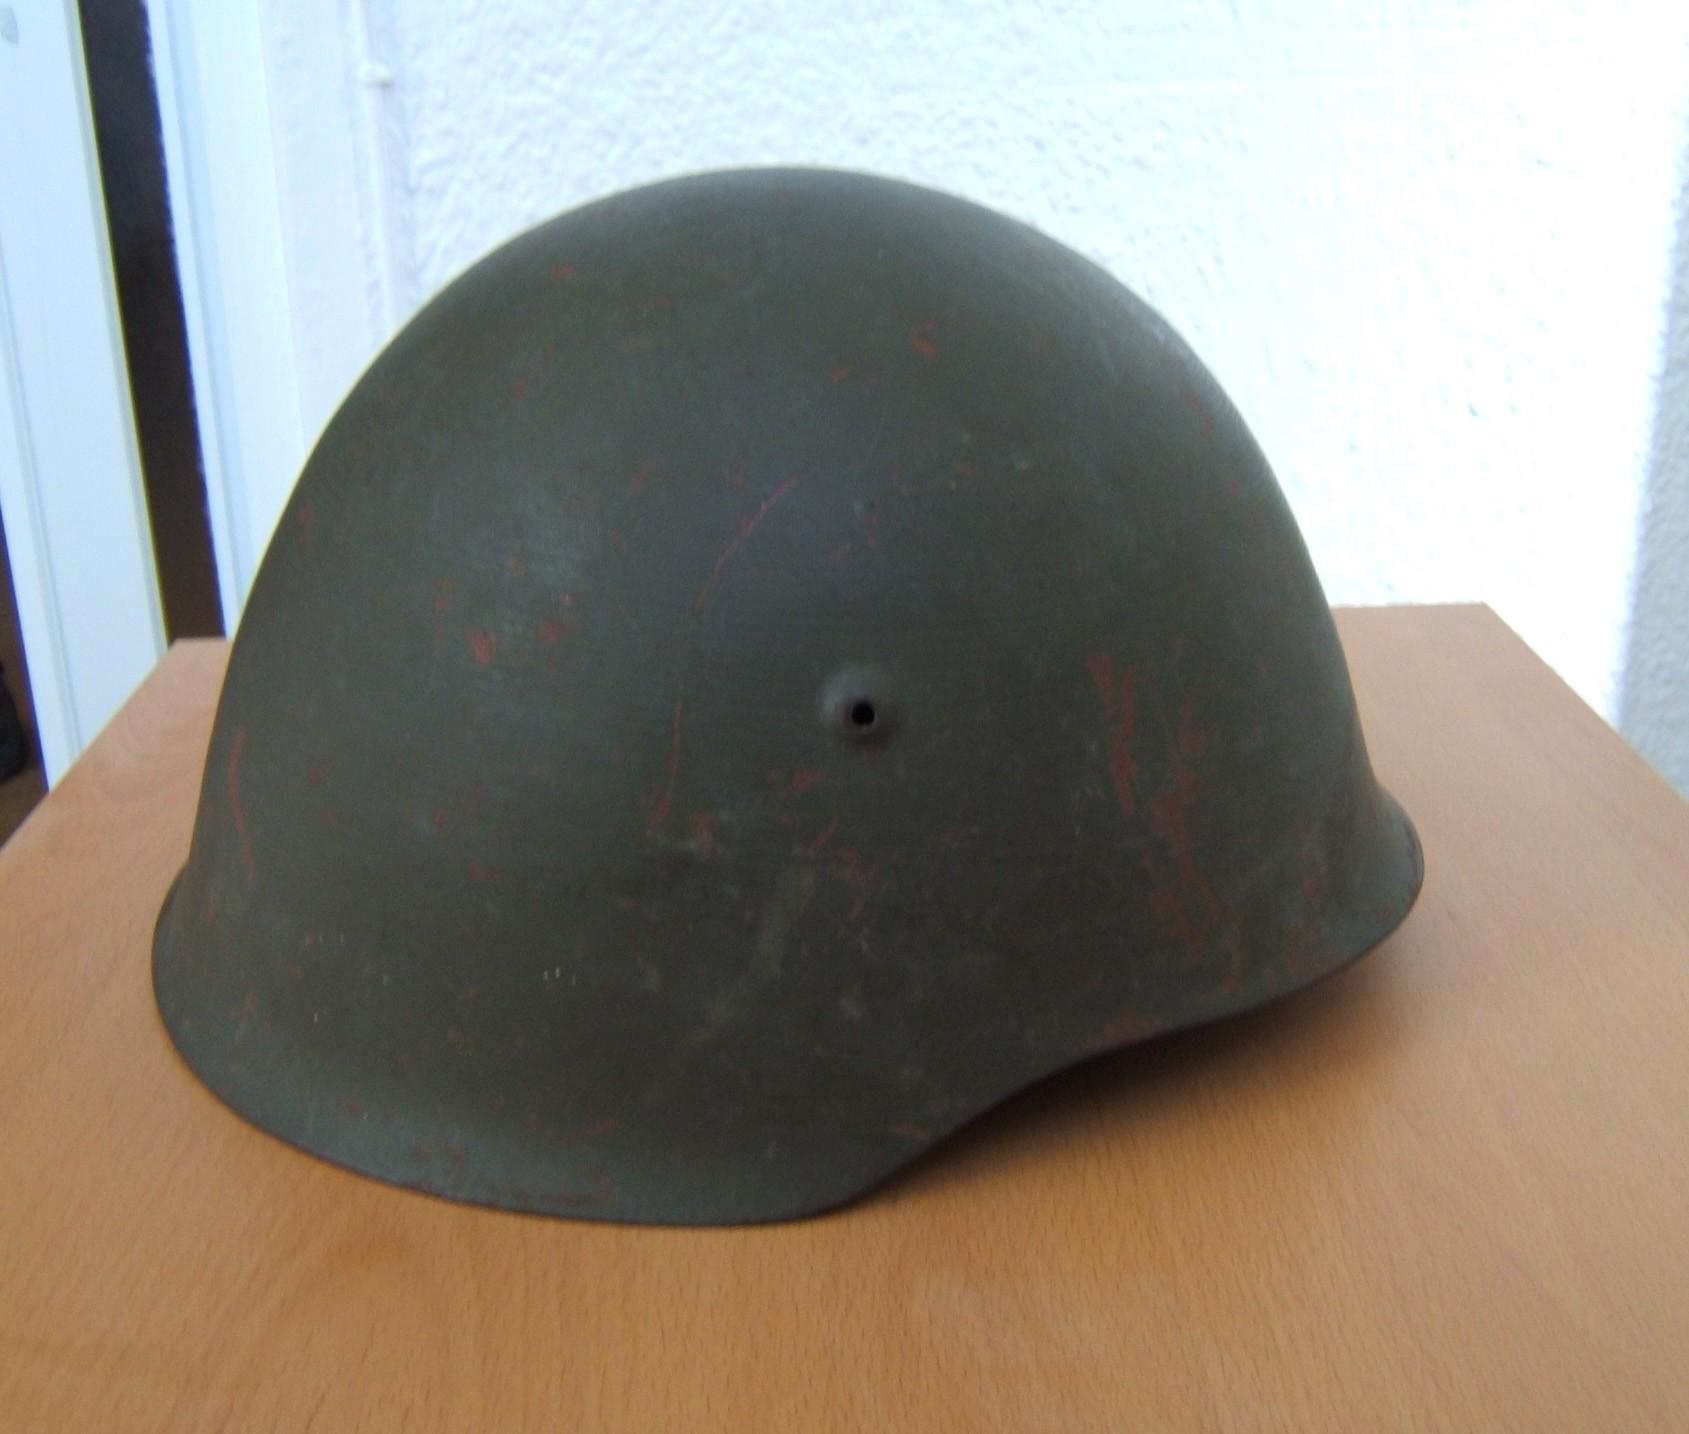 Portuguese M940 helmet with 1963 fabric liner and chin-strap